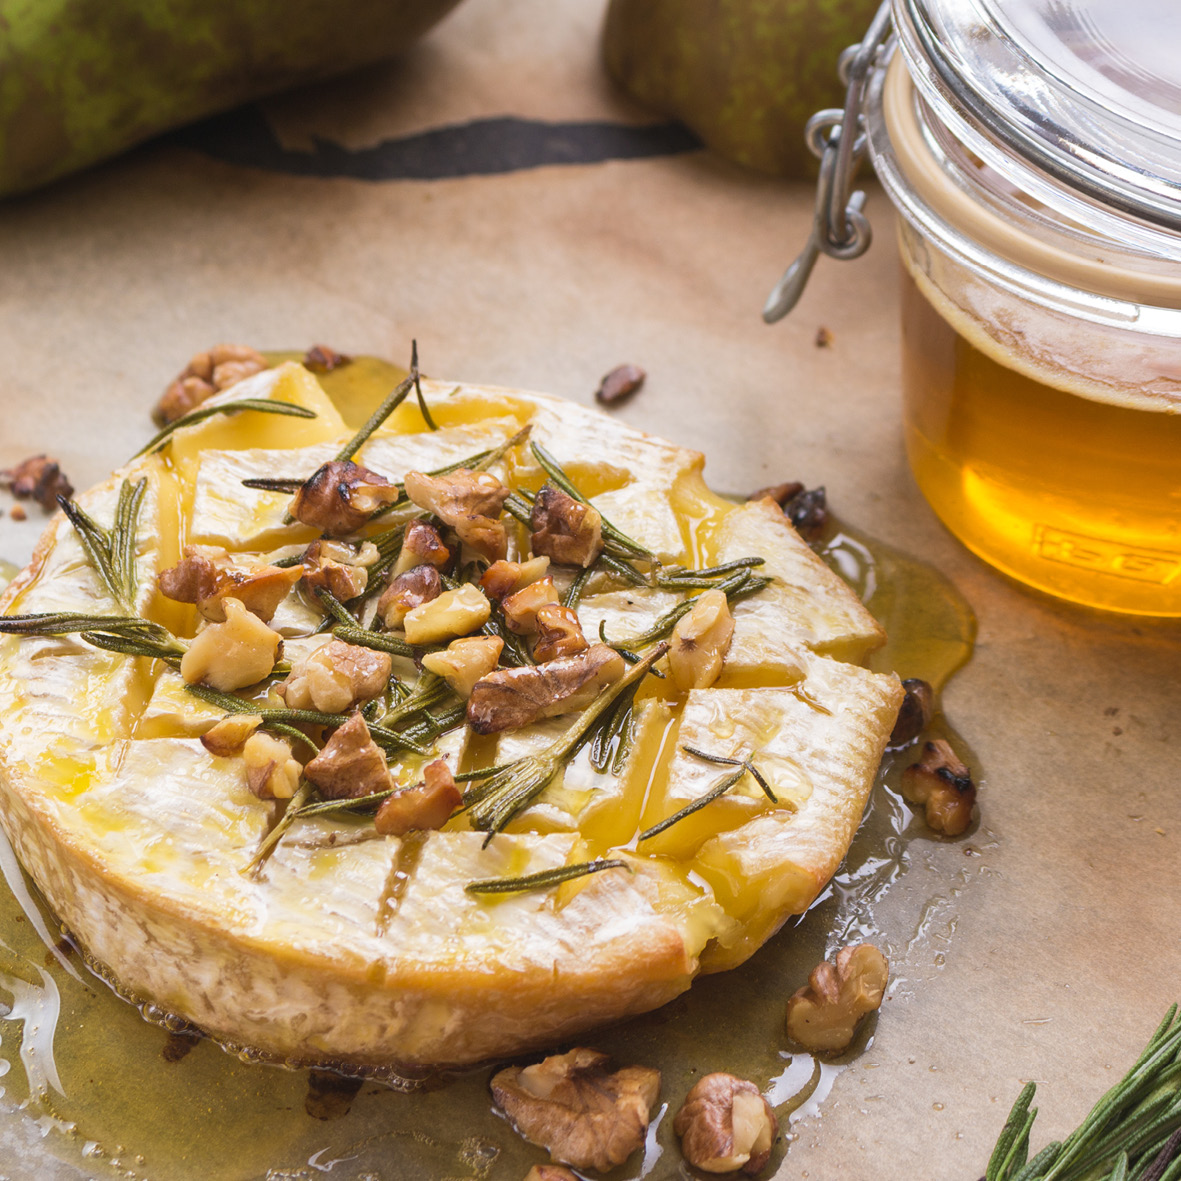 baked_brie_with_honey_walnut_and_pears.jpg